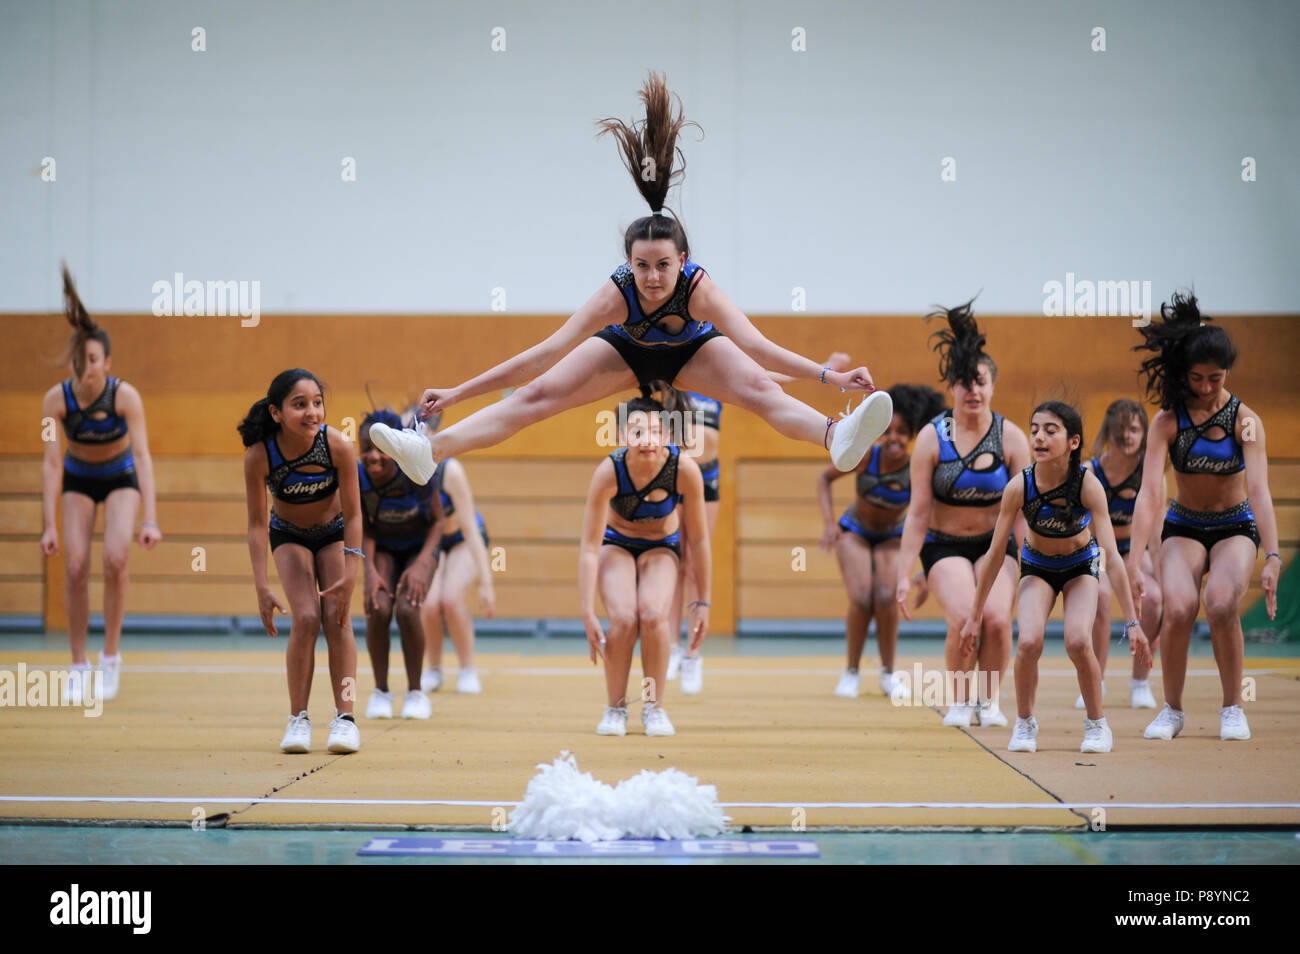 Young teenager cheerleaders dancing, acrobacy, acrobatic moves cheerleaders in blue in the air - Stock Image